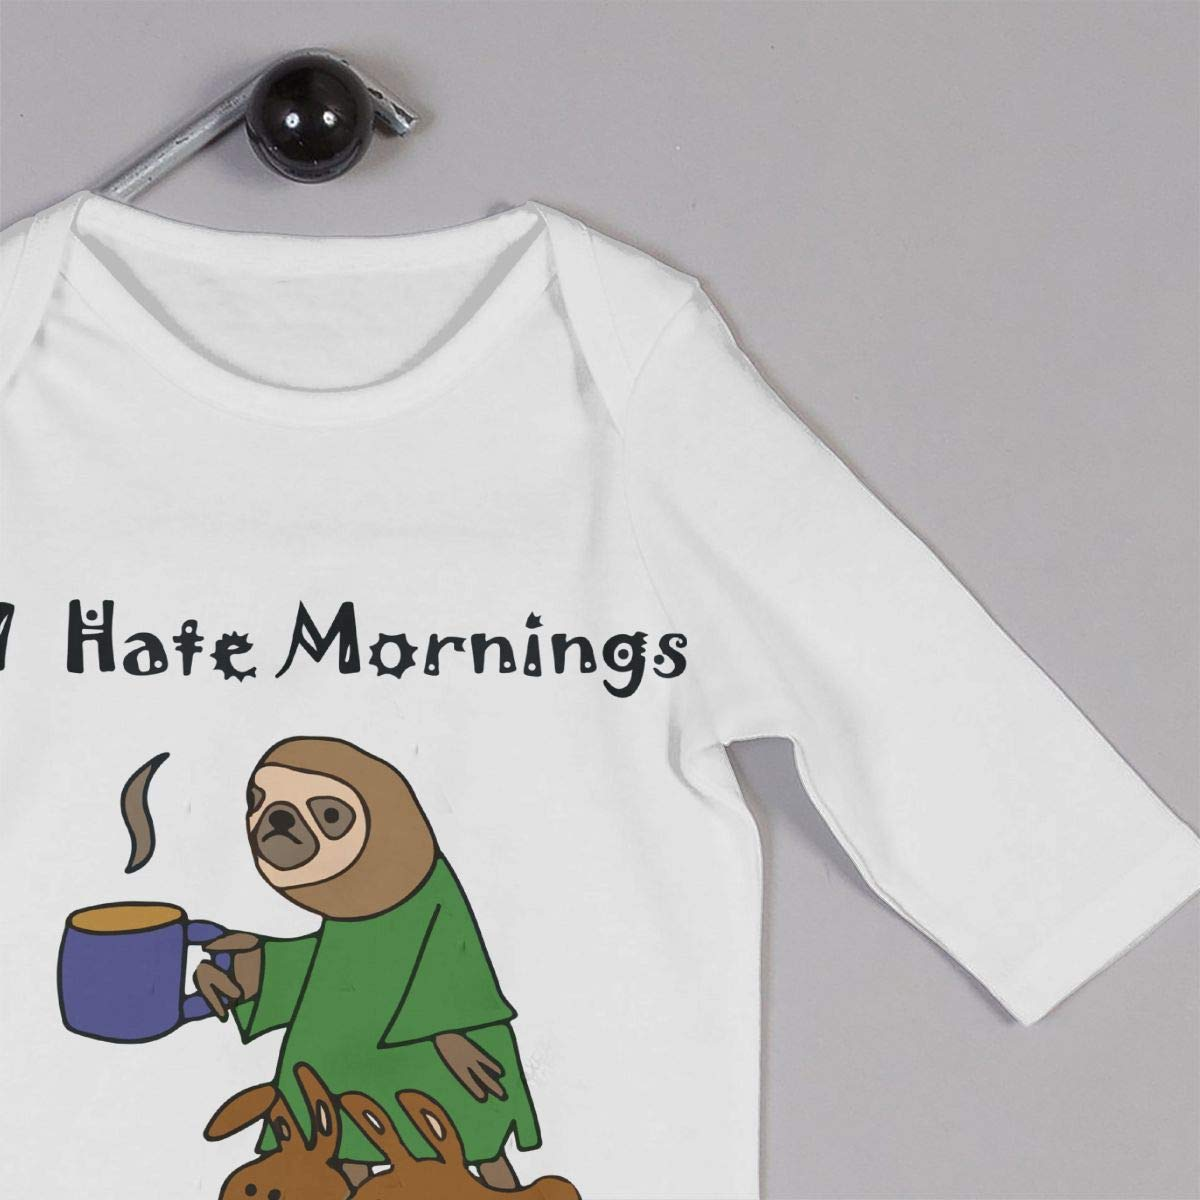 A1BY-5US Infant Babys Cotton Long Sleeve Funny Sloth Hates Mornings Baby Clothes One-Piece Romper Clothes